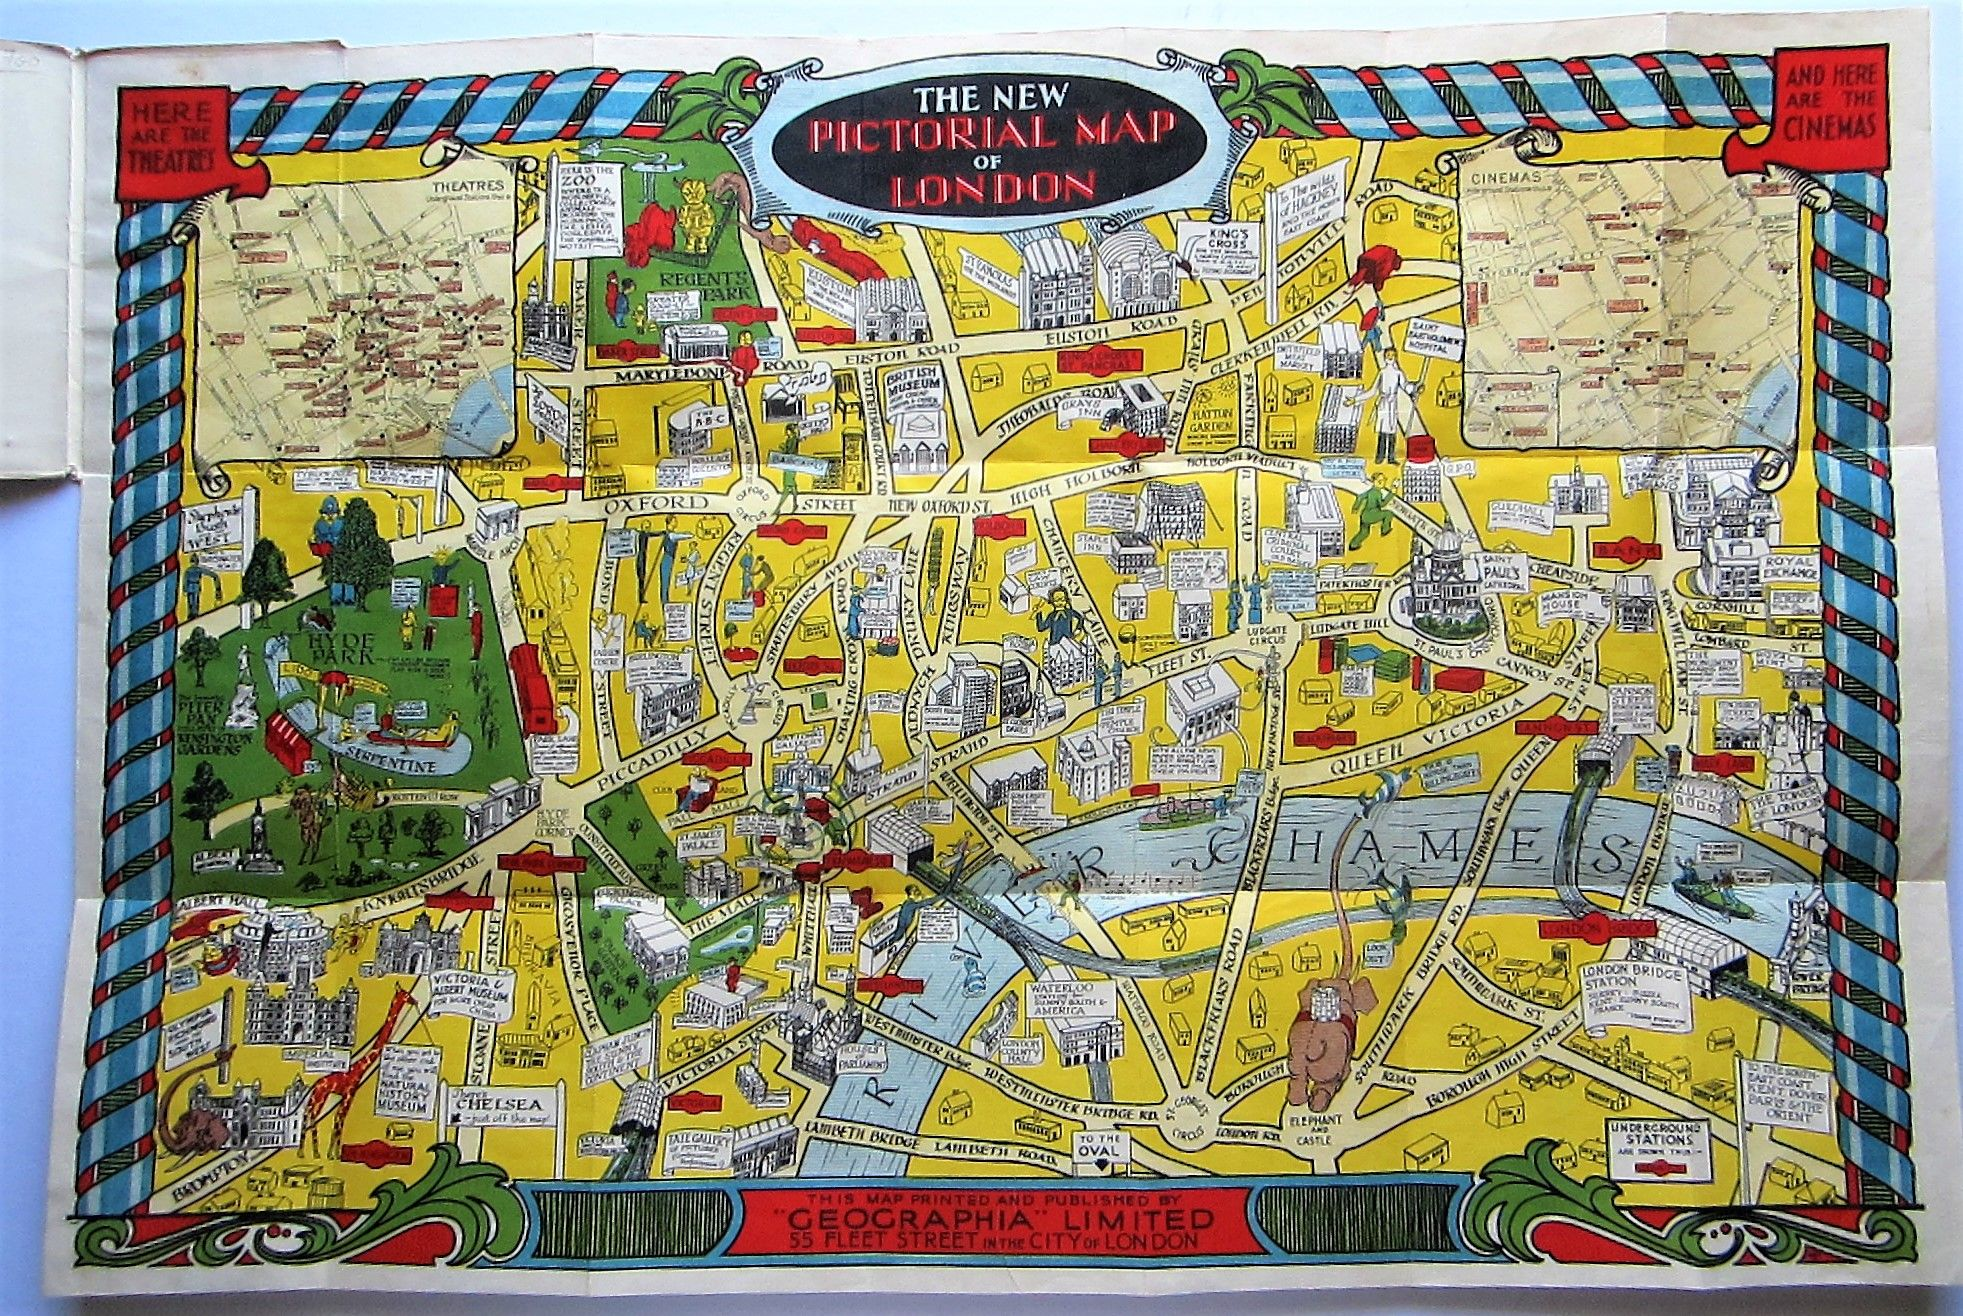 The New Pictorial Map of London (photo 7)